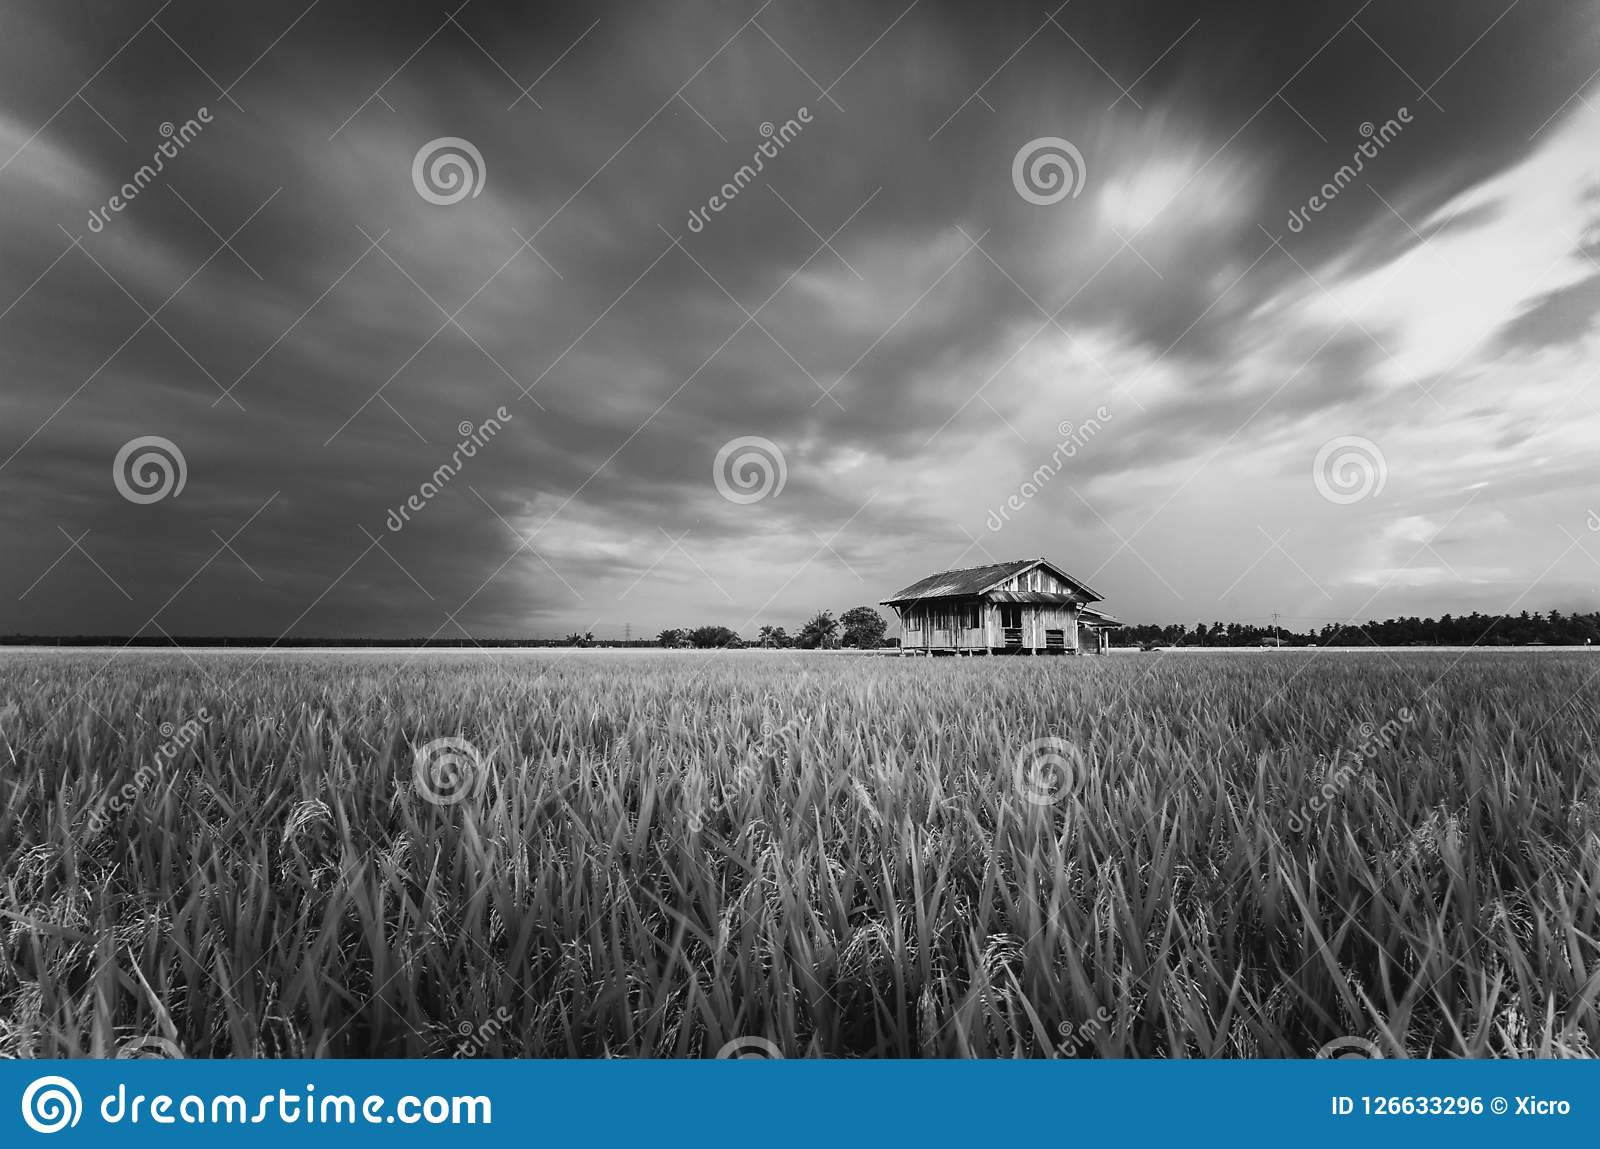 Dilapidated abandon wooden house surrounding paddy field